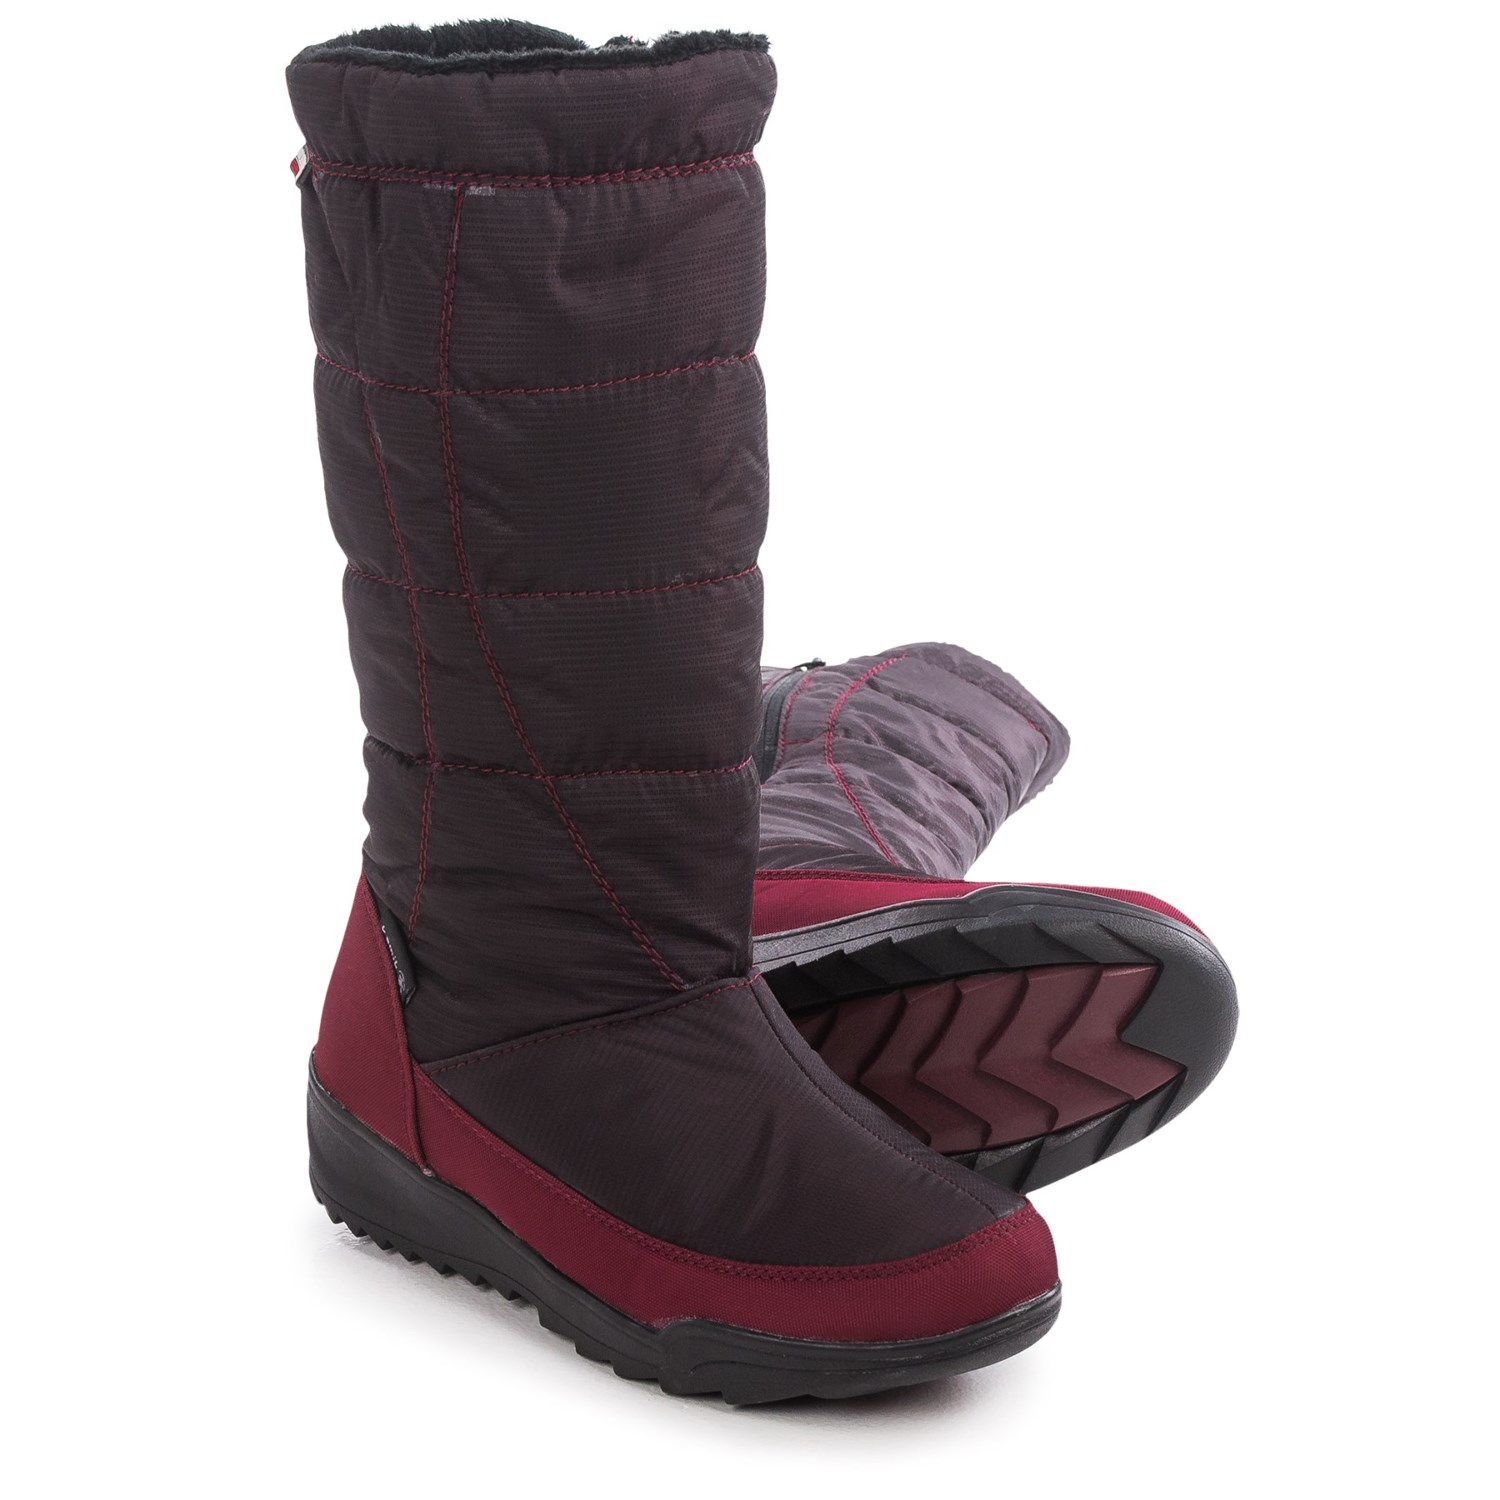 Customer Reviews of Kamik Nice Snow Boots - Waterproof Insulated